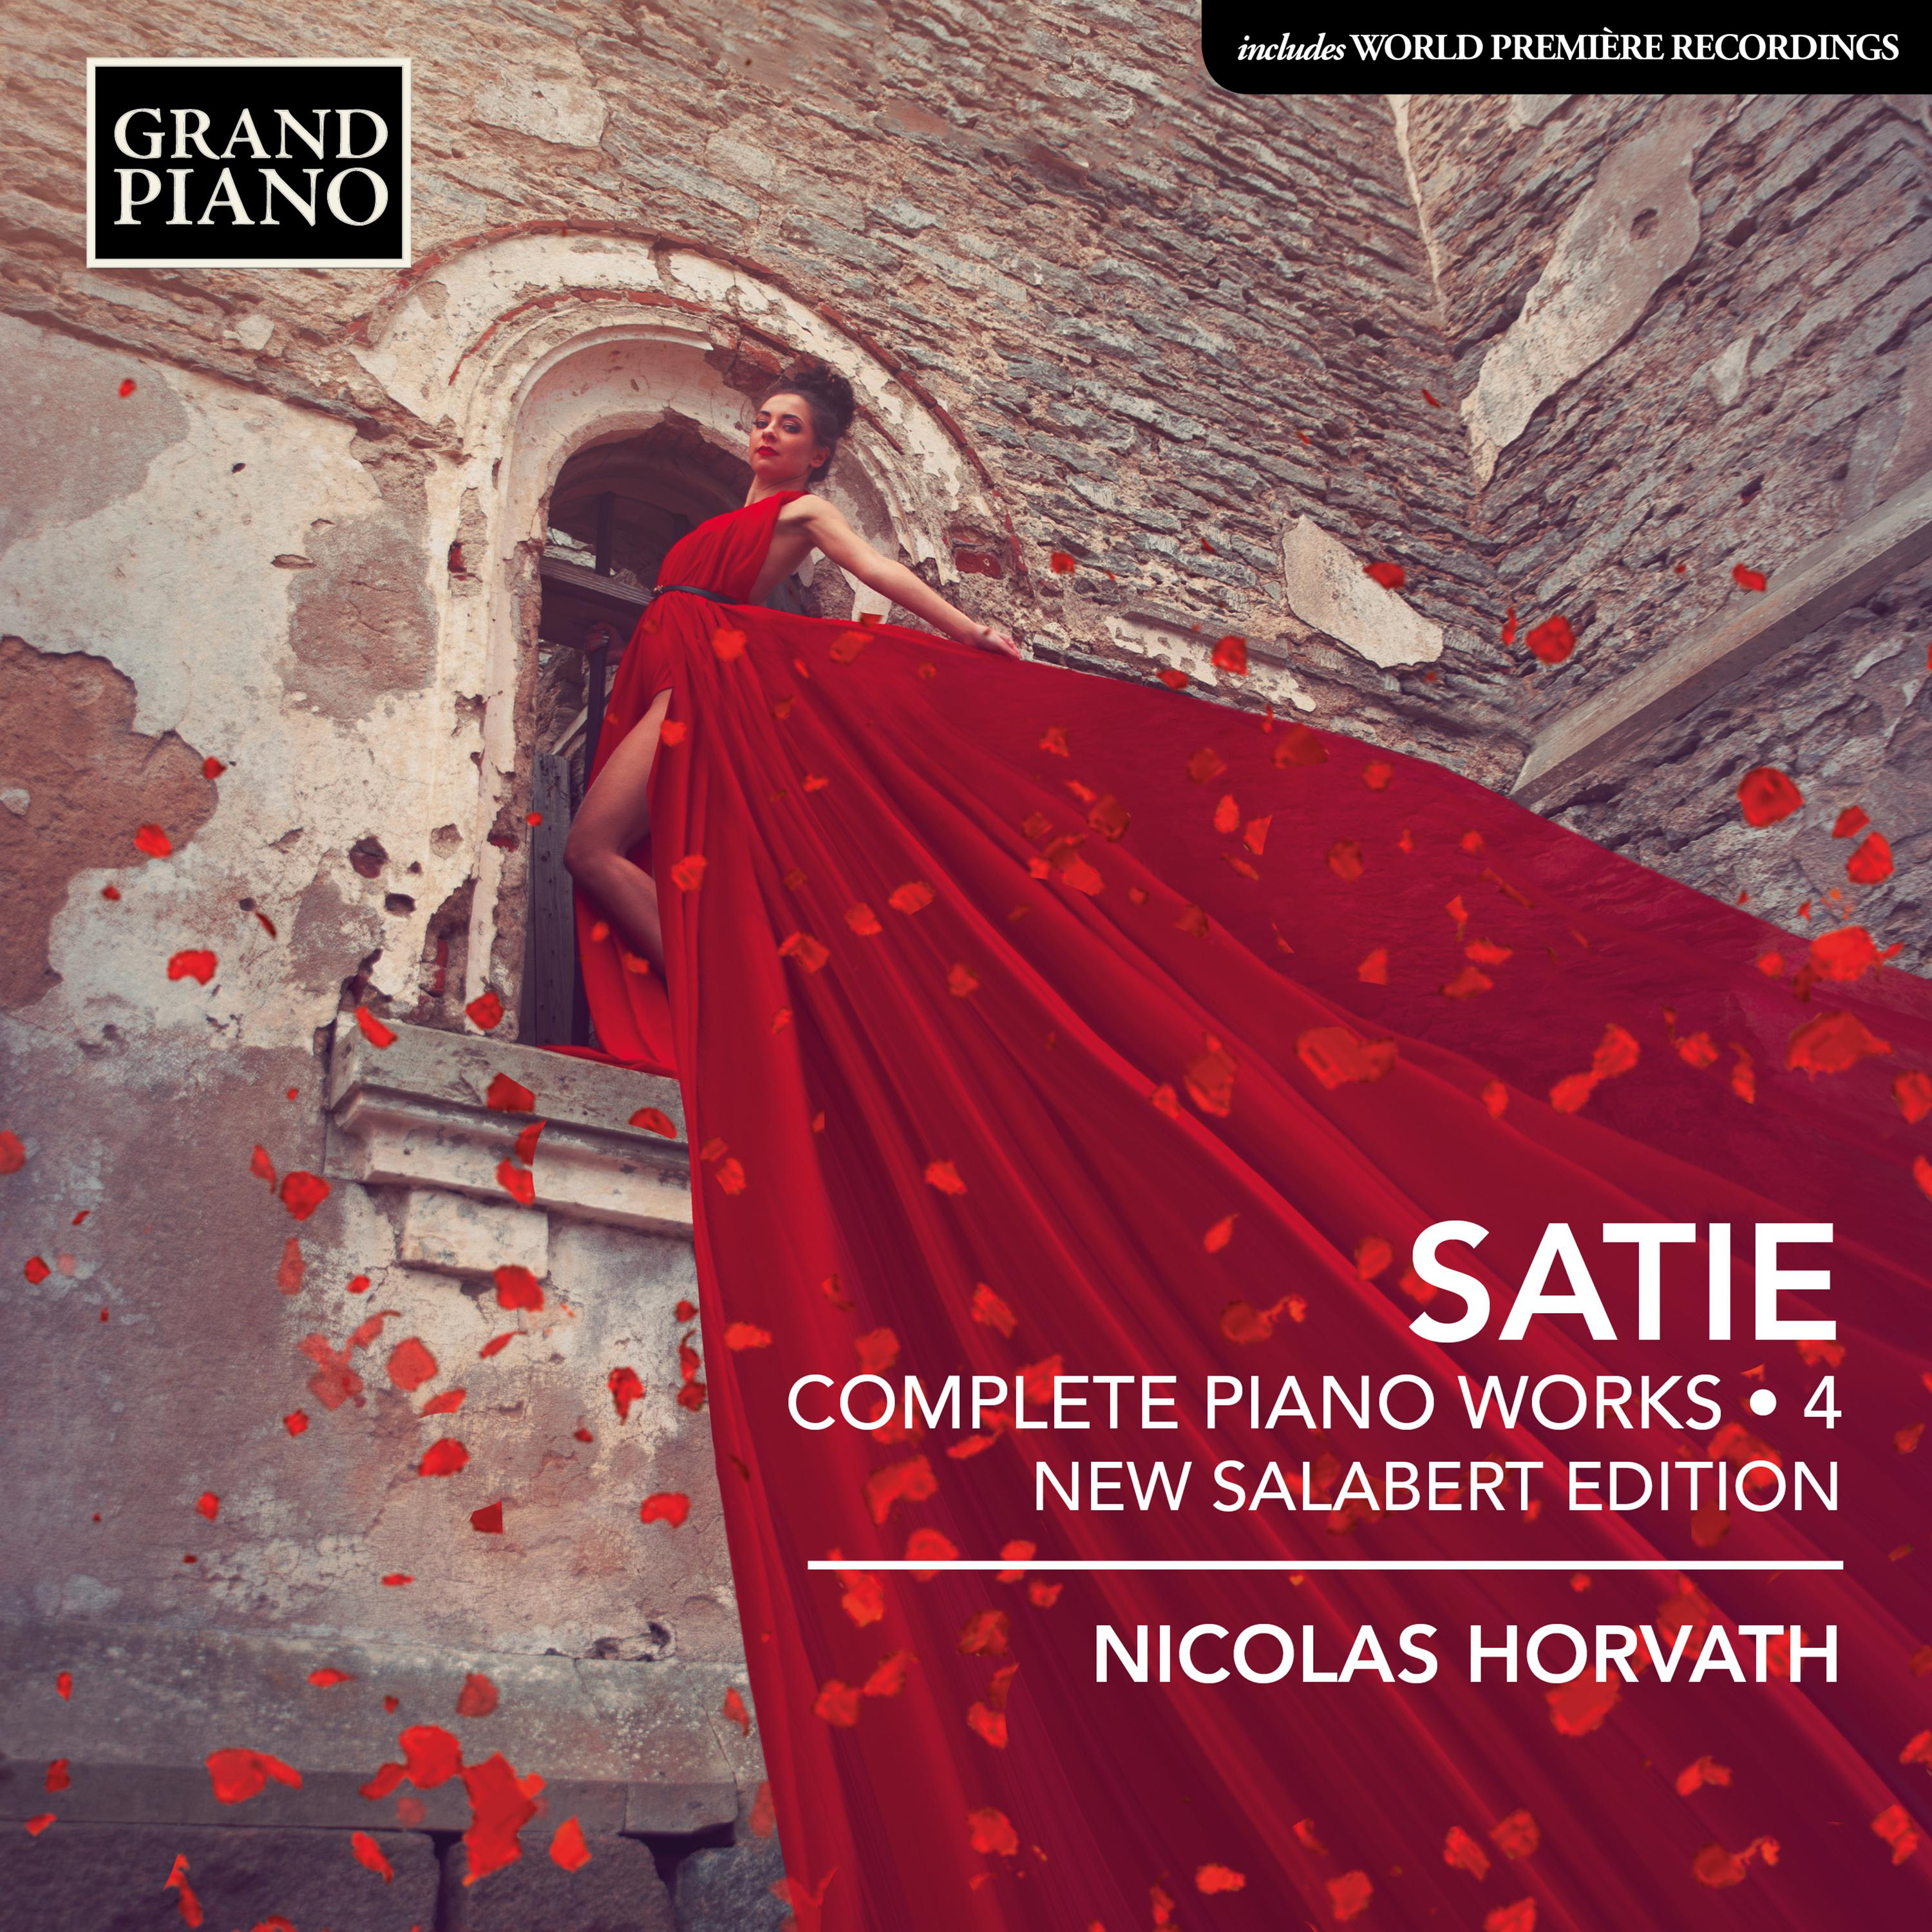 SATIE, E.: Piano Works (Complete), Vol. 4 (New Salabert Edition) (Horvath)